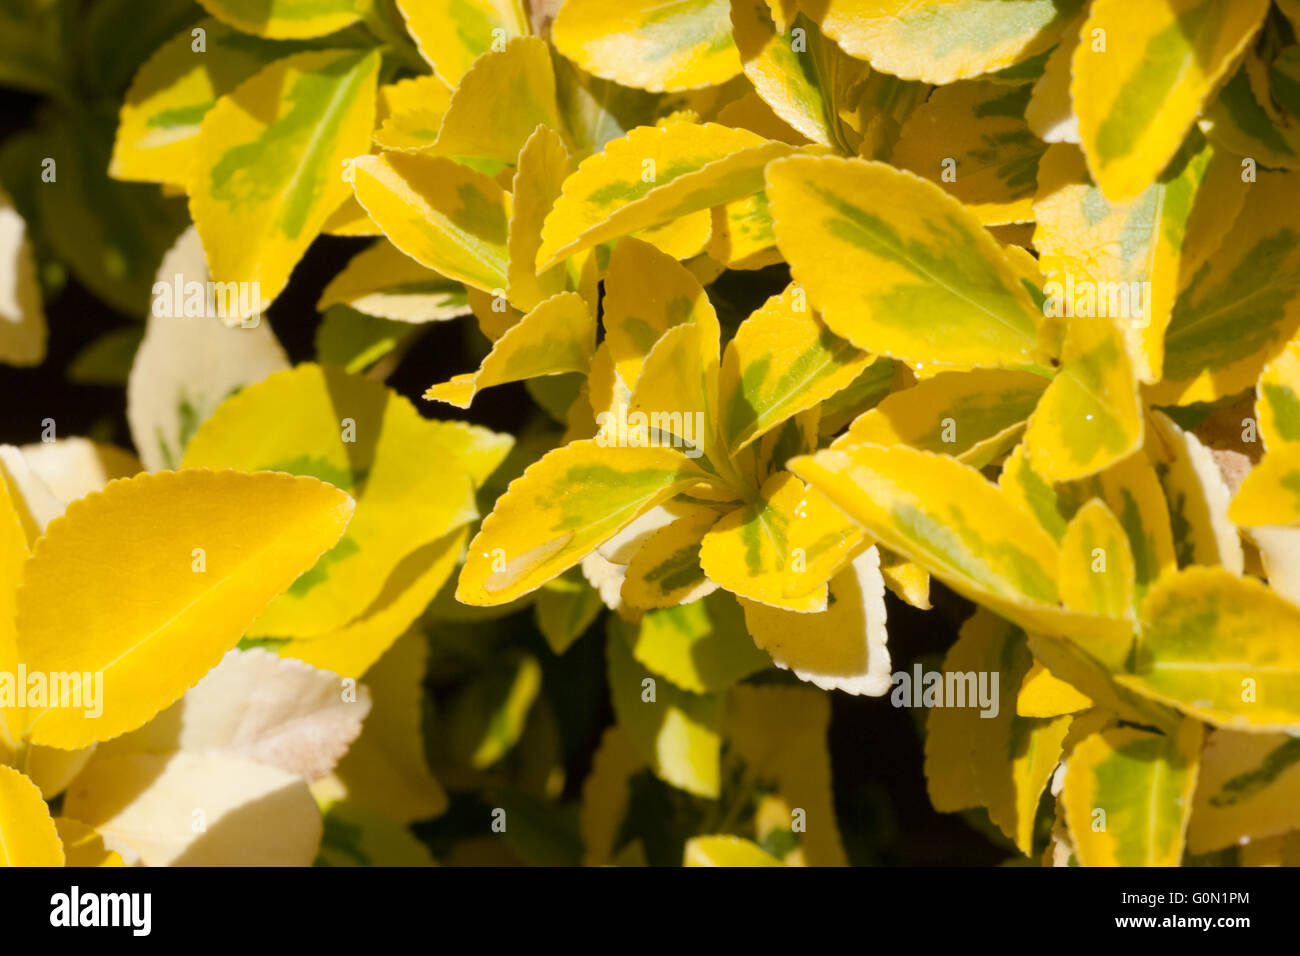 Euonymus fortunei emerald 'n' gold shrub close up - Stock Image